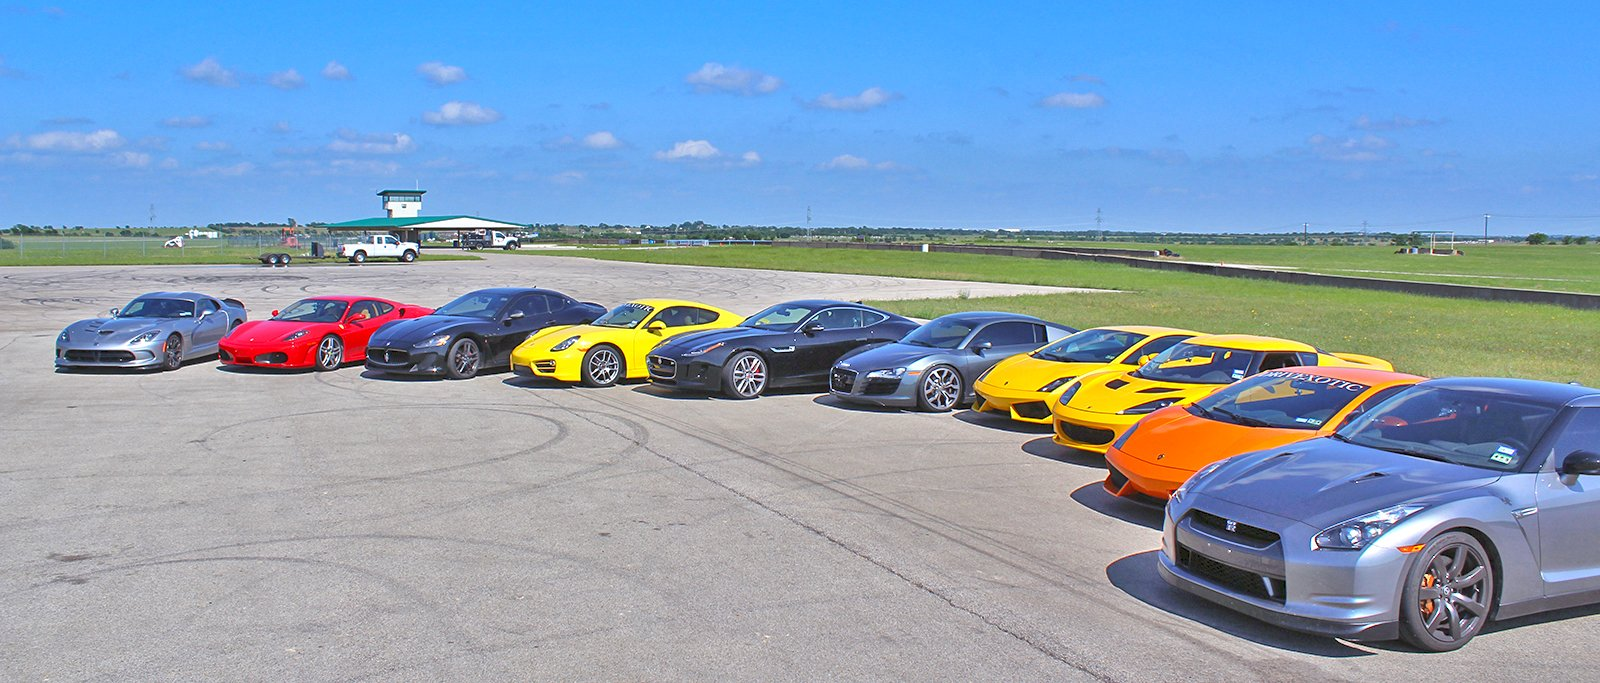 The Dallas Ft Worth Exotic Car Driving Experience